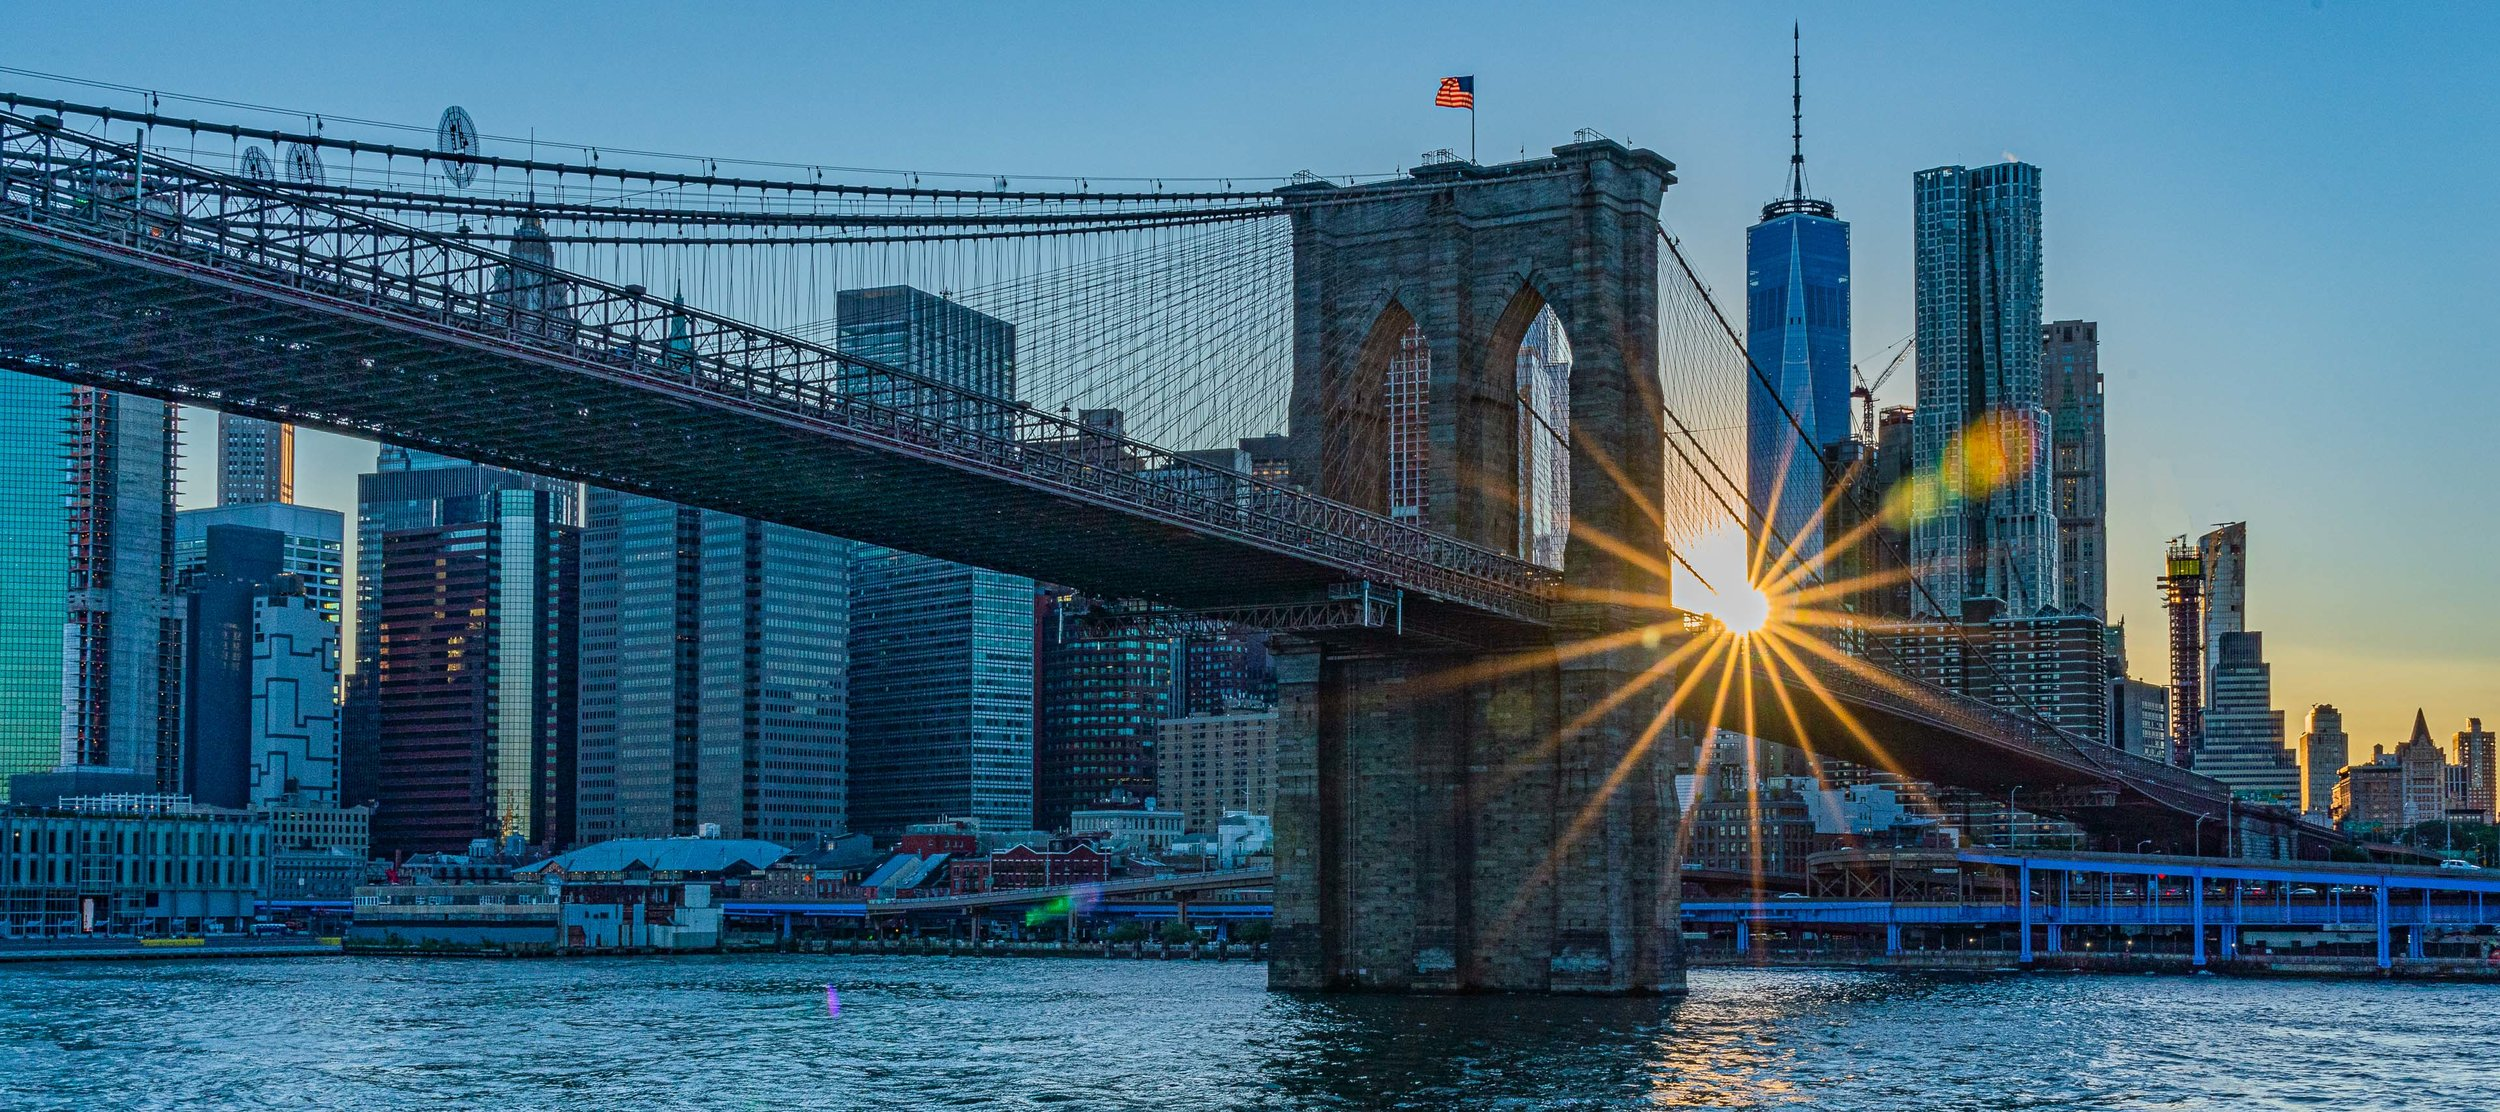 Brooklyn Bridge and Freedom Tower Sunset 2019